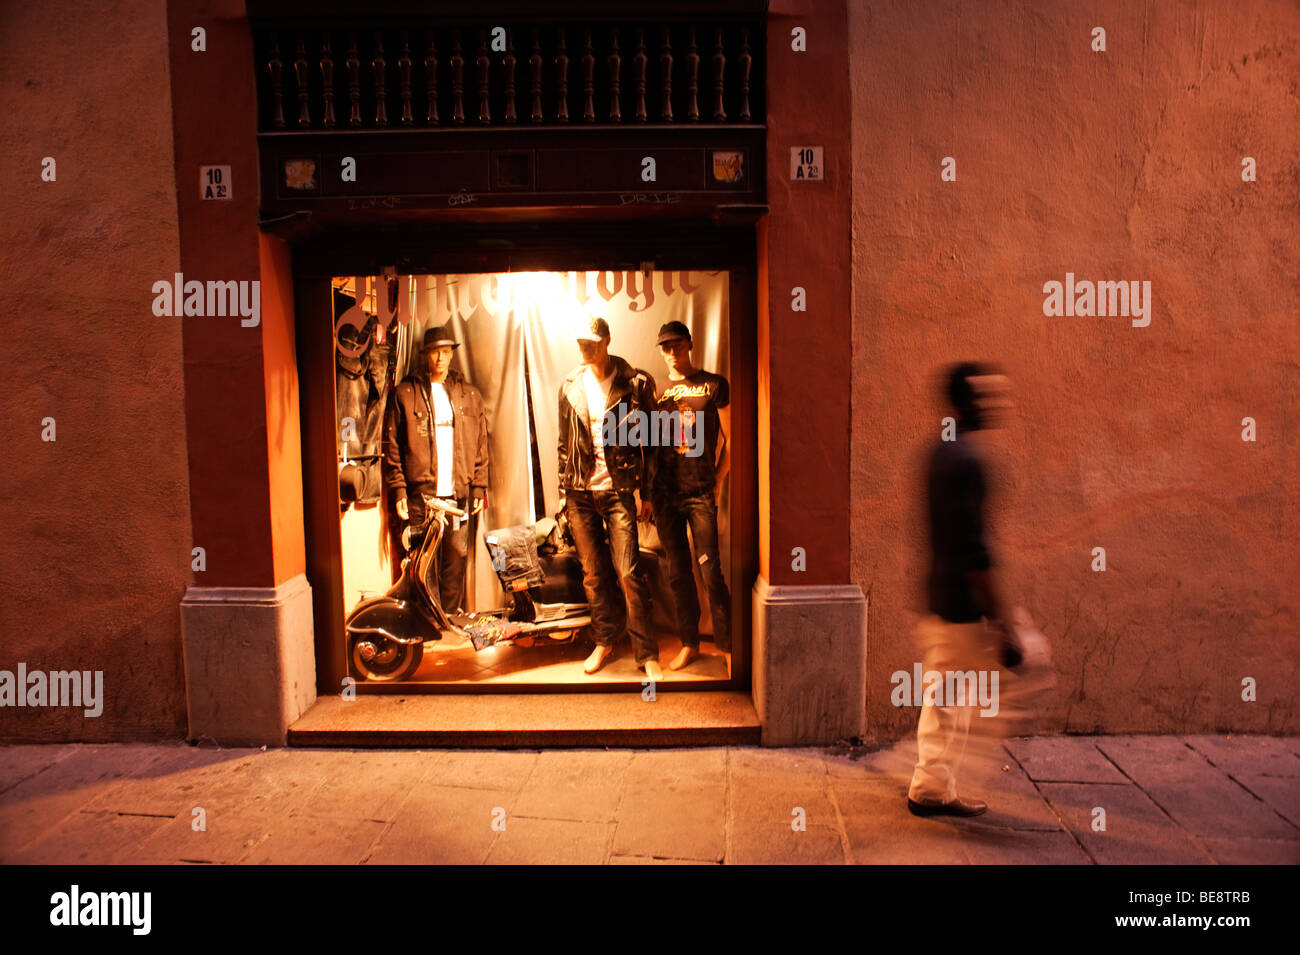 Trendy boutique clothes shop along narrow alley. Barri Gotic. Barcelona. Spain - Stock Image